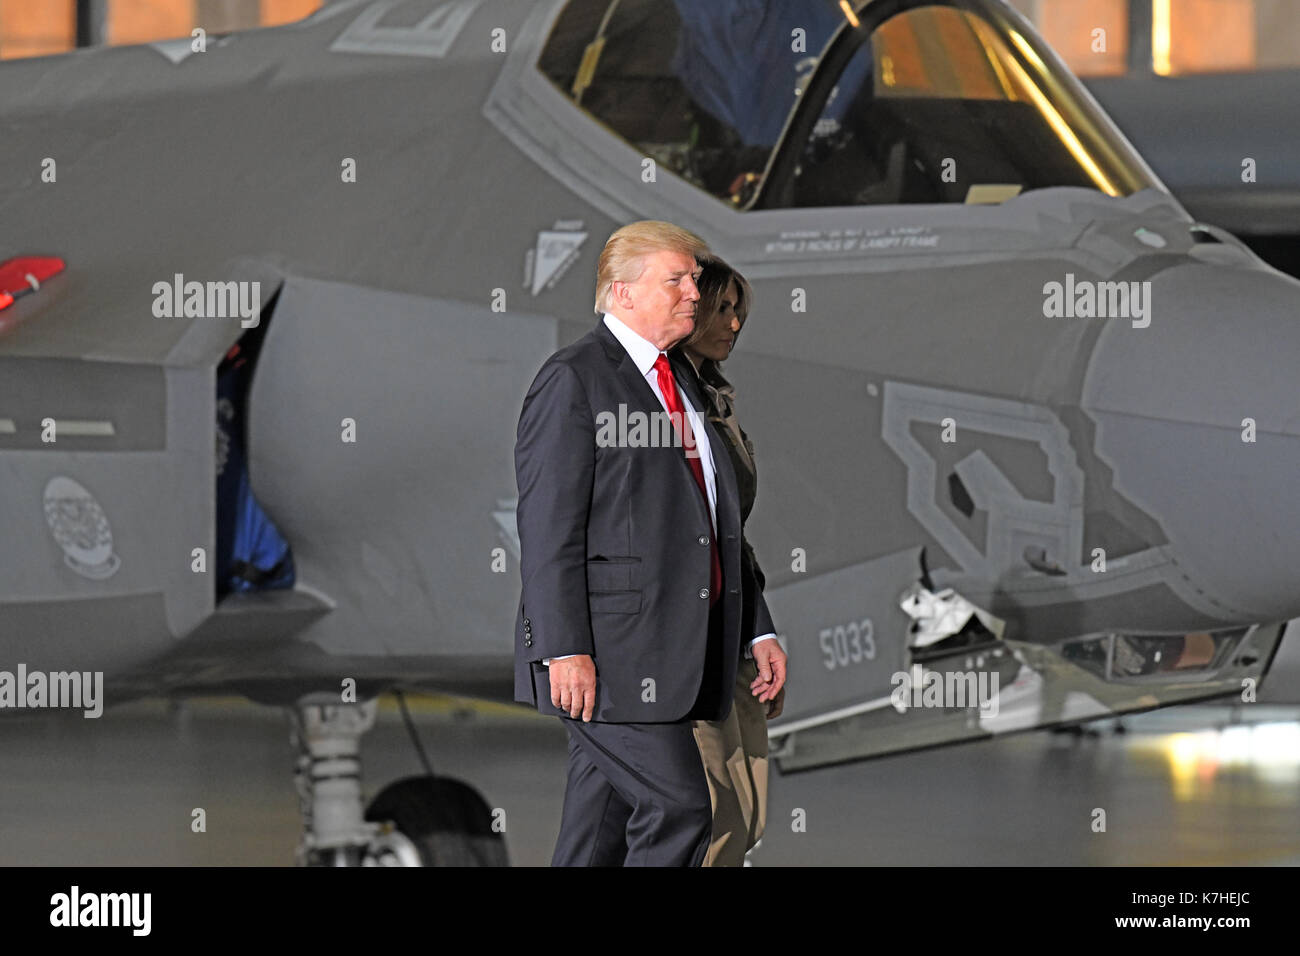 The Past. 15th Sep, 2017. United States President Donald J. Trump and first lady Melania Trump walk in front of an F-35 Joint Strike Fighter as they arrive for the President to deliver remarks to military personnel and families in a hanger at Joint Base Andrews in Maryland on Friday, September 15, 2017. The F-35 is a plane the President has criticized in the past. He visited JBA to commemorate the 70th anniversary of the US Air Force. Credit: Ron Sachs/CNP · NO WIRE SERVICE · Photo: Ron Sachs/Consolidated/dpa/Alamy Live News - Stock Image